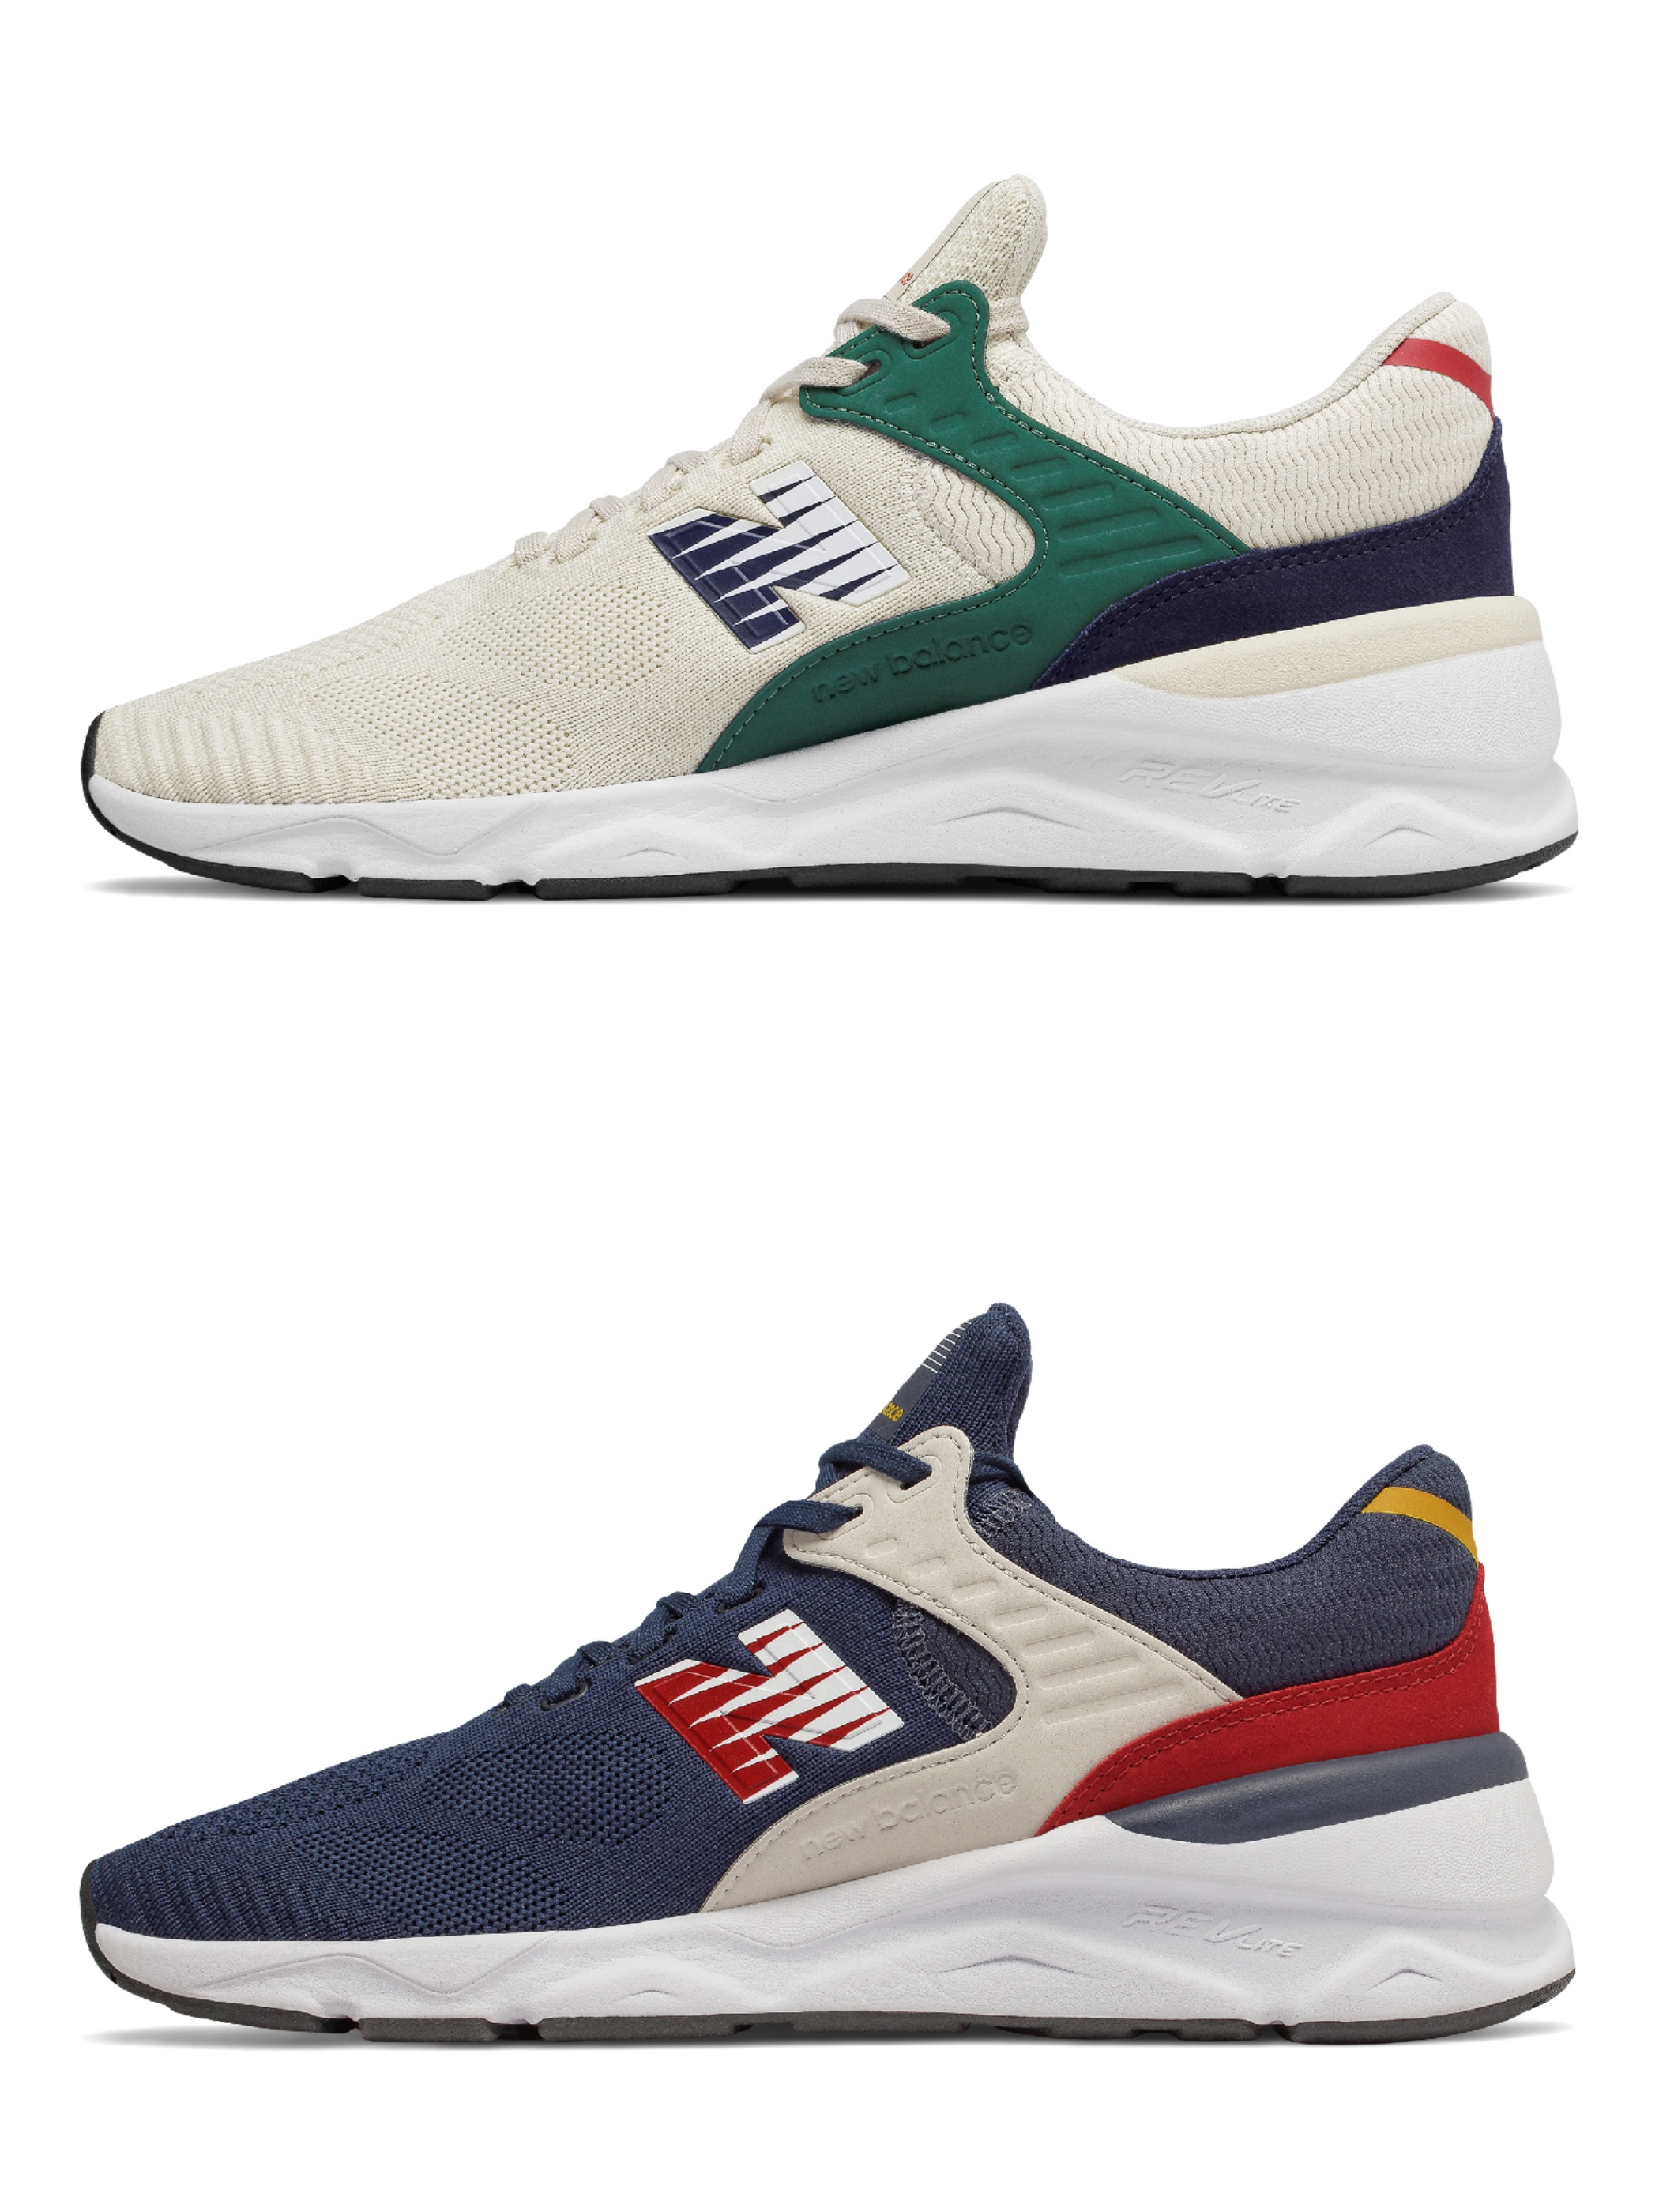 These New Balance X90 Knit's Are A